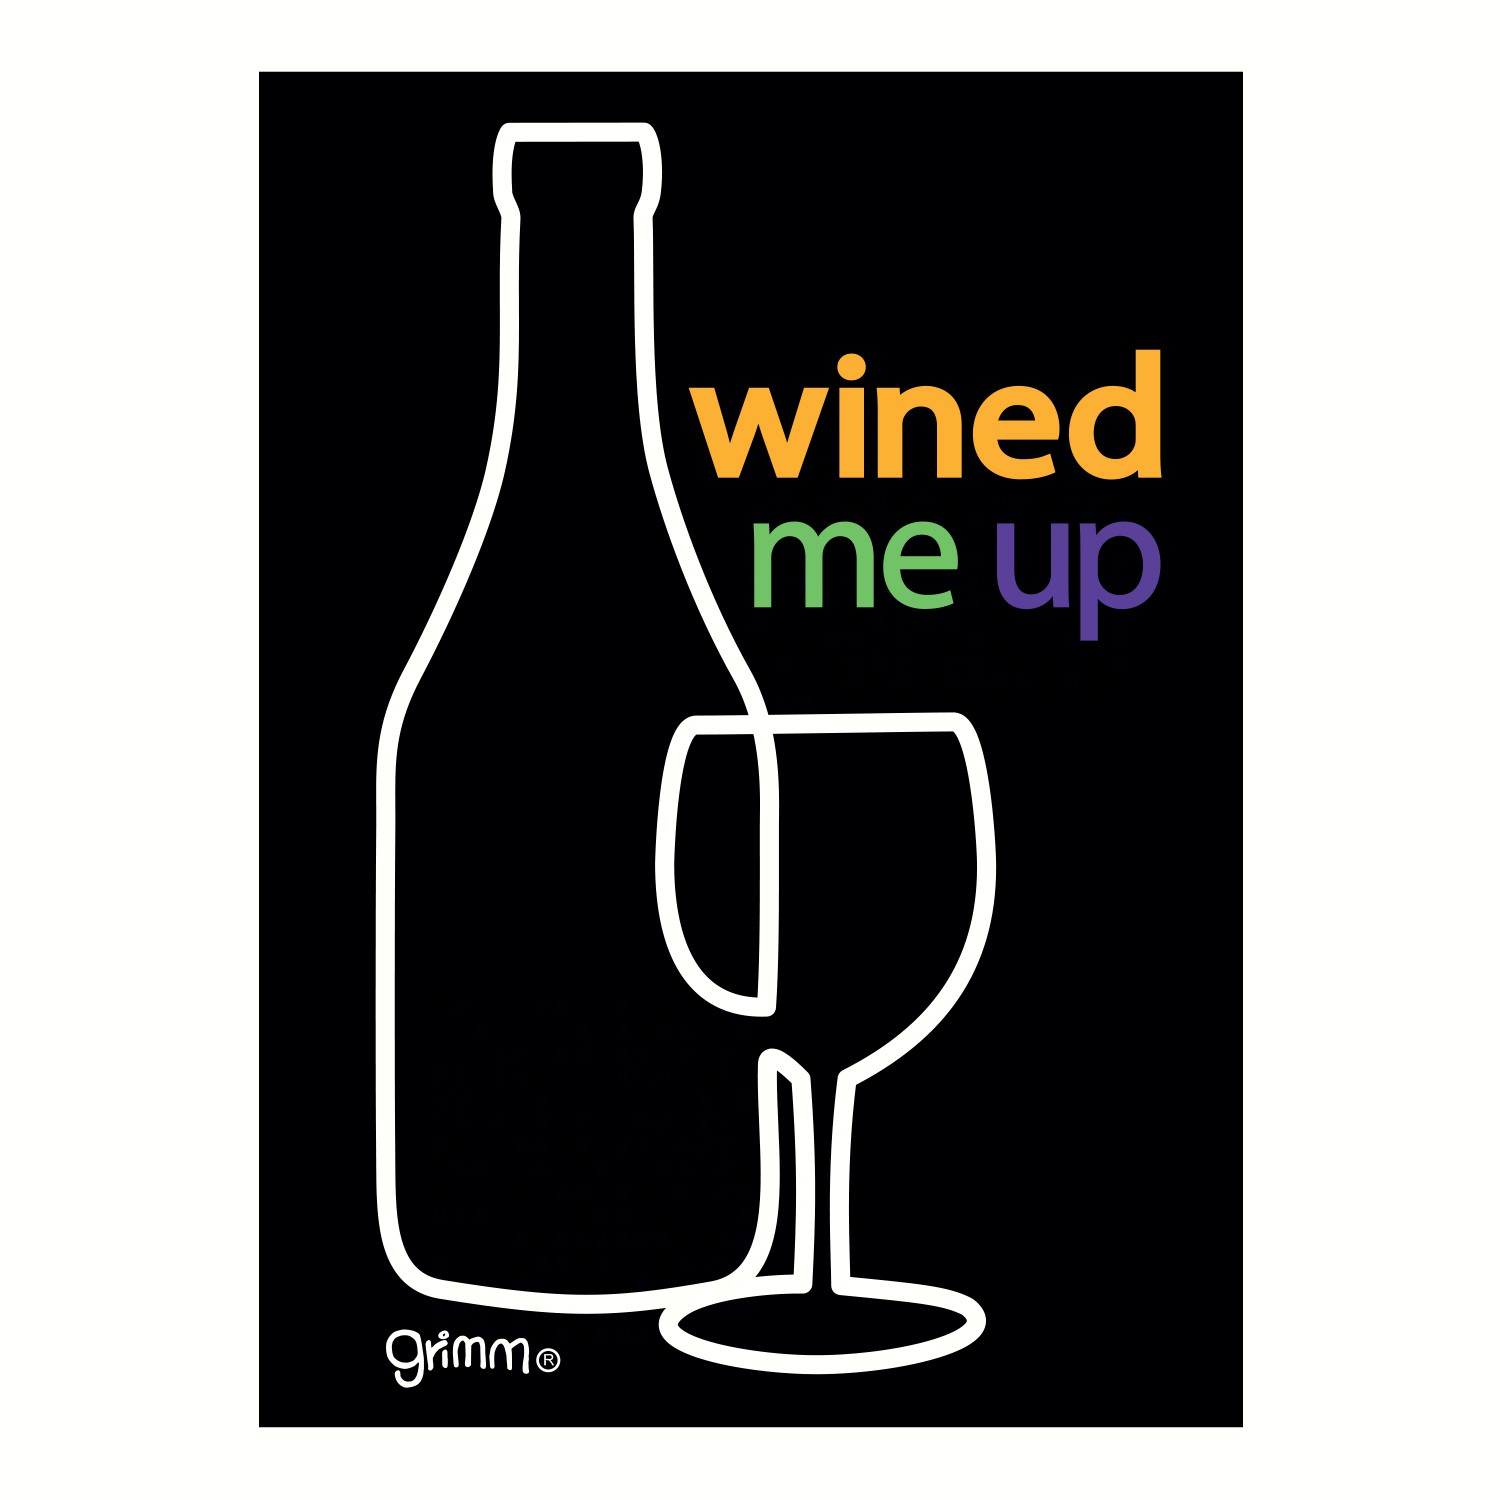 Magnet, Humorous Saying, Wined Me